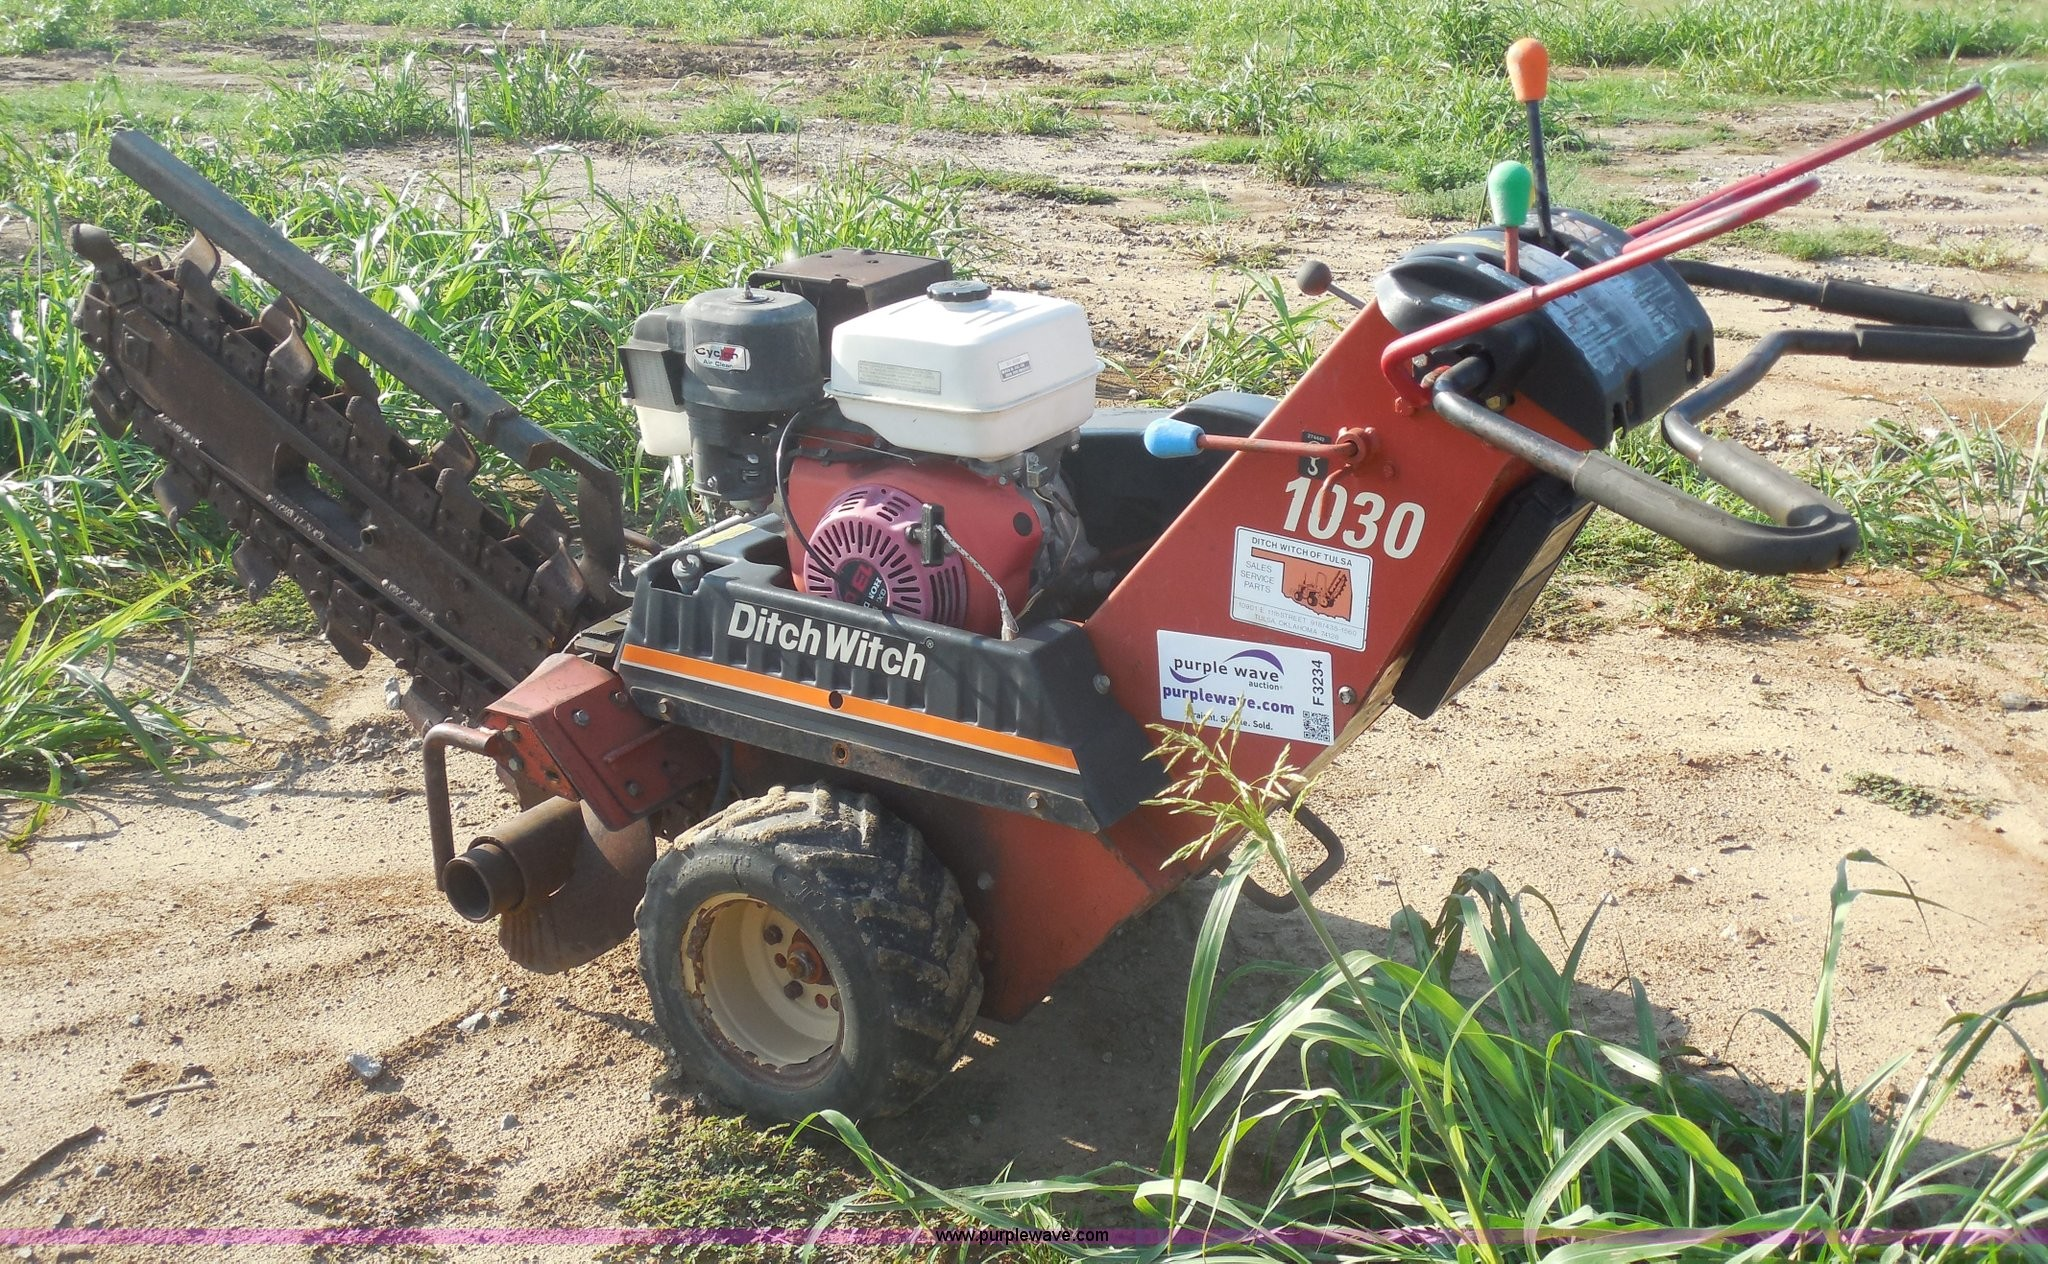 Ditch Witch 1030 Parts Breakdown 2000 Ditch Witch 1030 Walk Behind Trencher In Tulsa Ok Of Ditch Witch 1030 Parts Breakdown